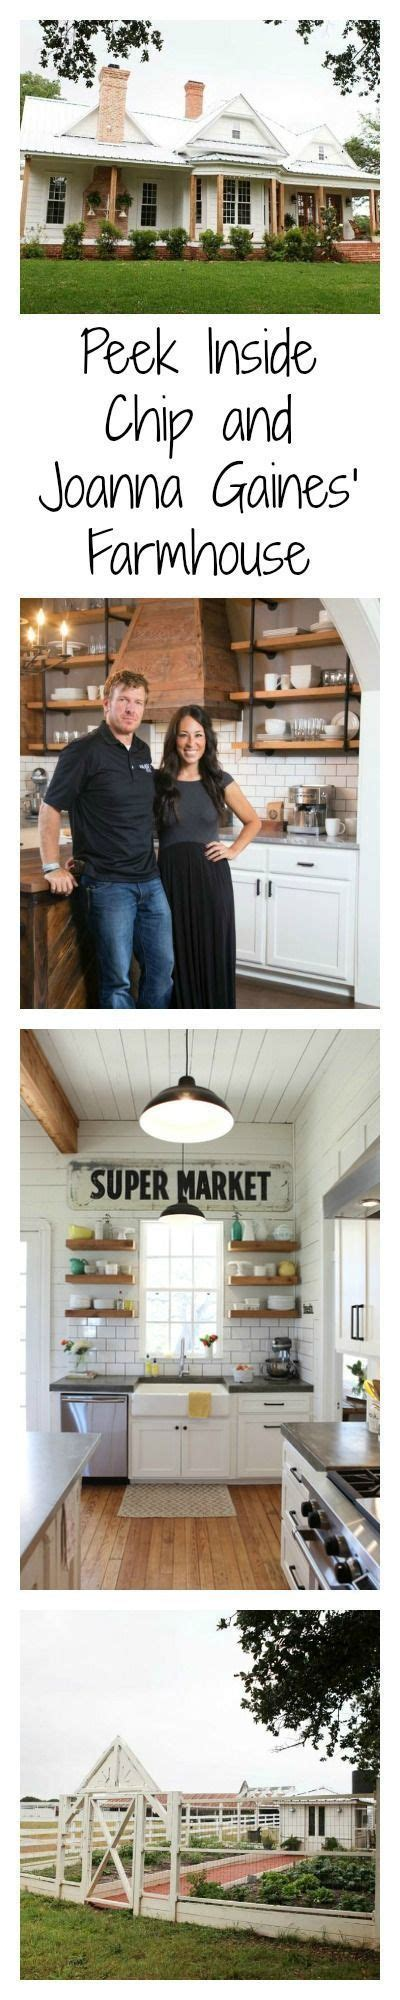 chip and joanna gaines tour schedule tour chip and joanna gaines farmhouse like you ve never seen it before home design house